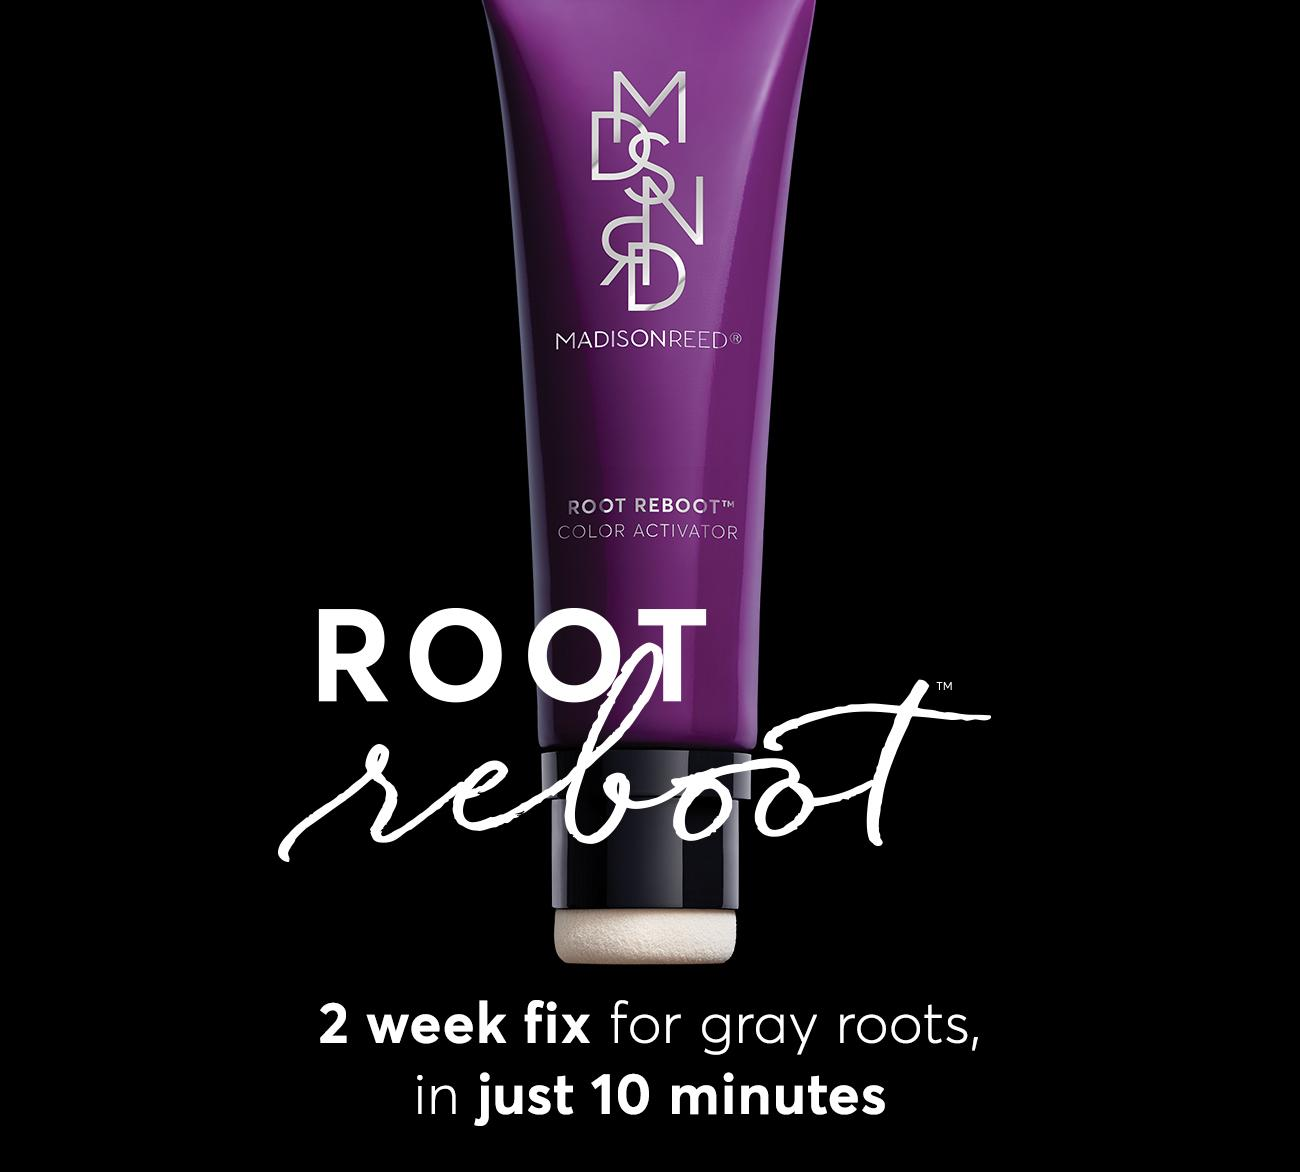 Madison Reed Root Reboot - 2 Week Fix for Gray Roots in Just 10 Minutes